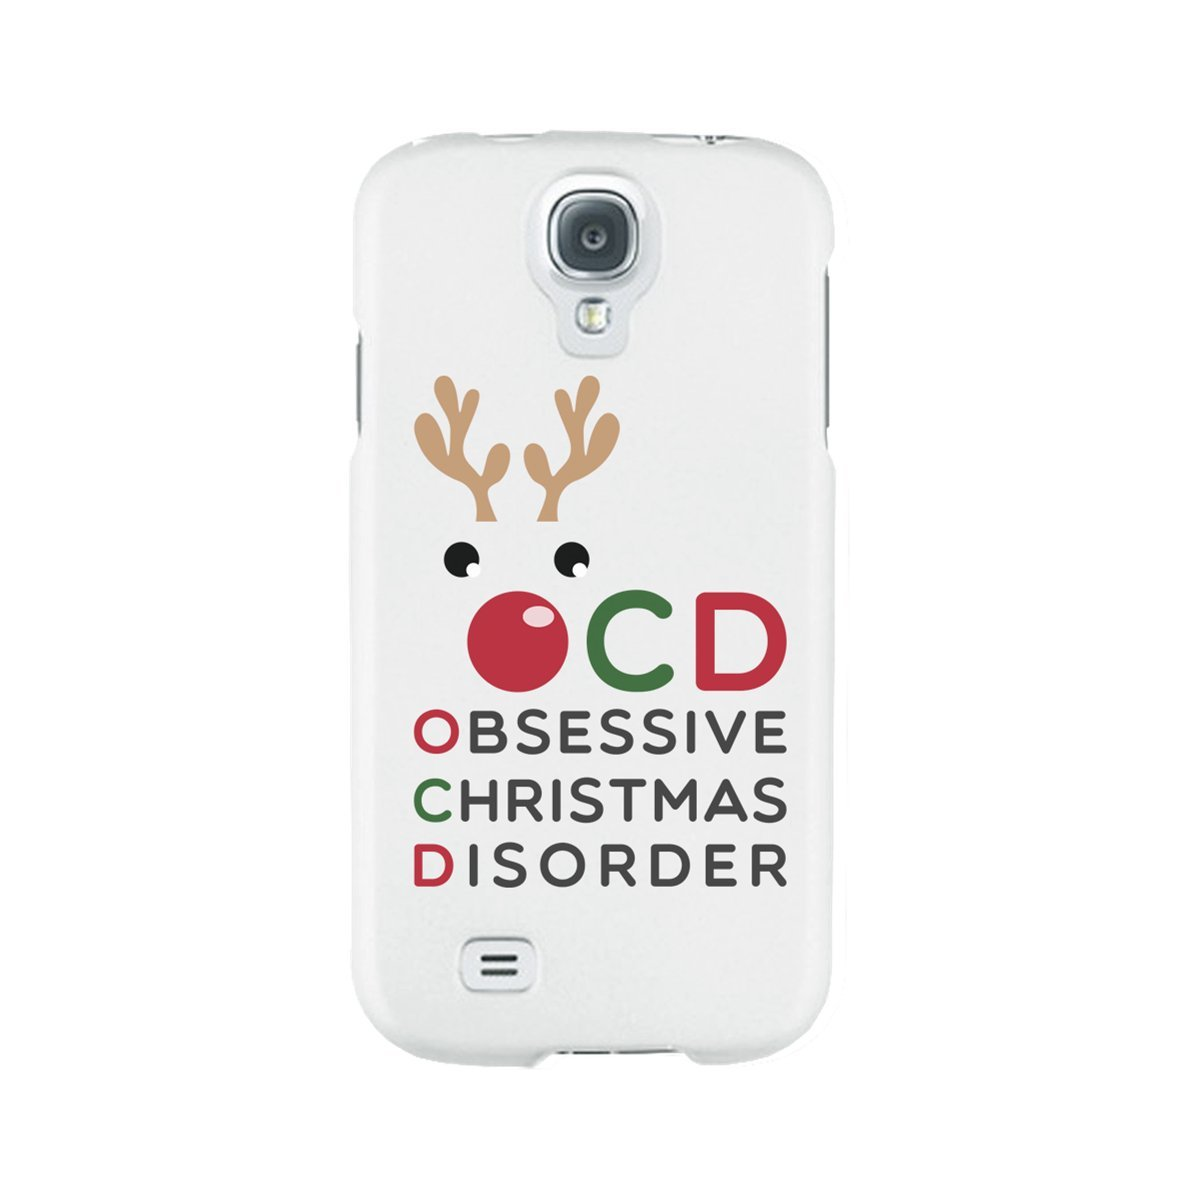 amazoncom cute obsessive christmas disorder rudolph phone case for iphone 4 iphone 5 iphone 5c